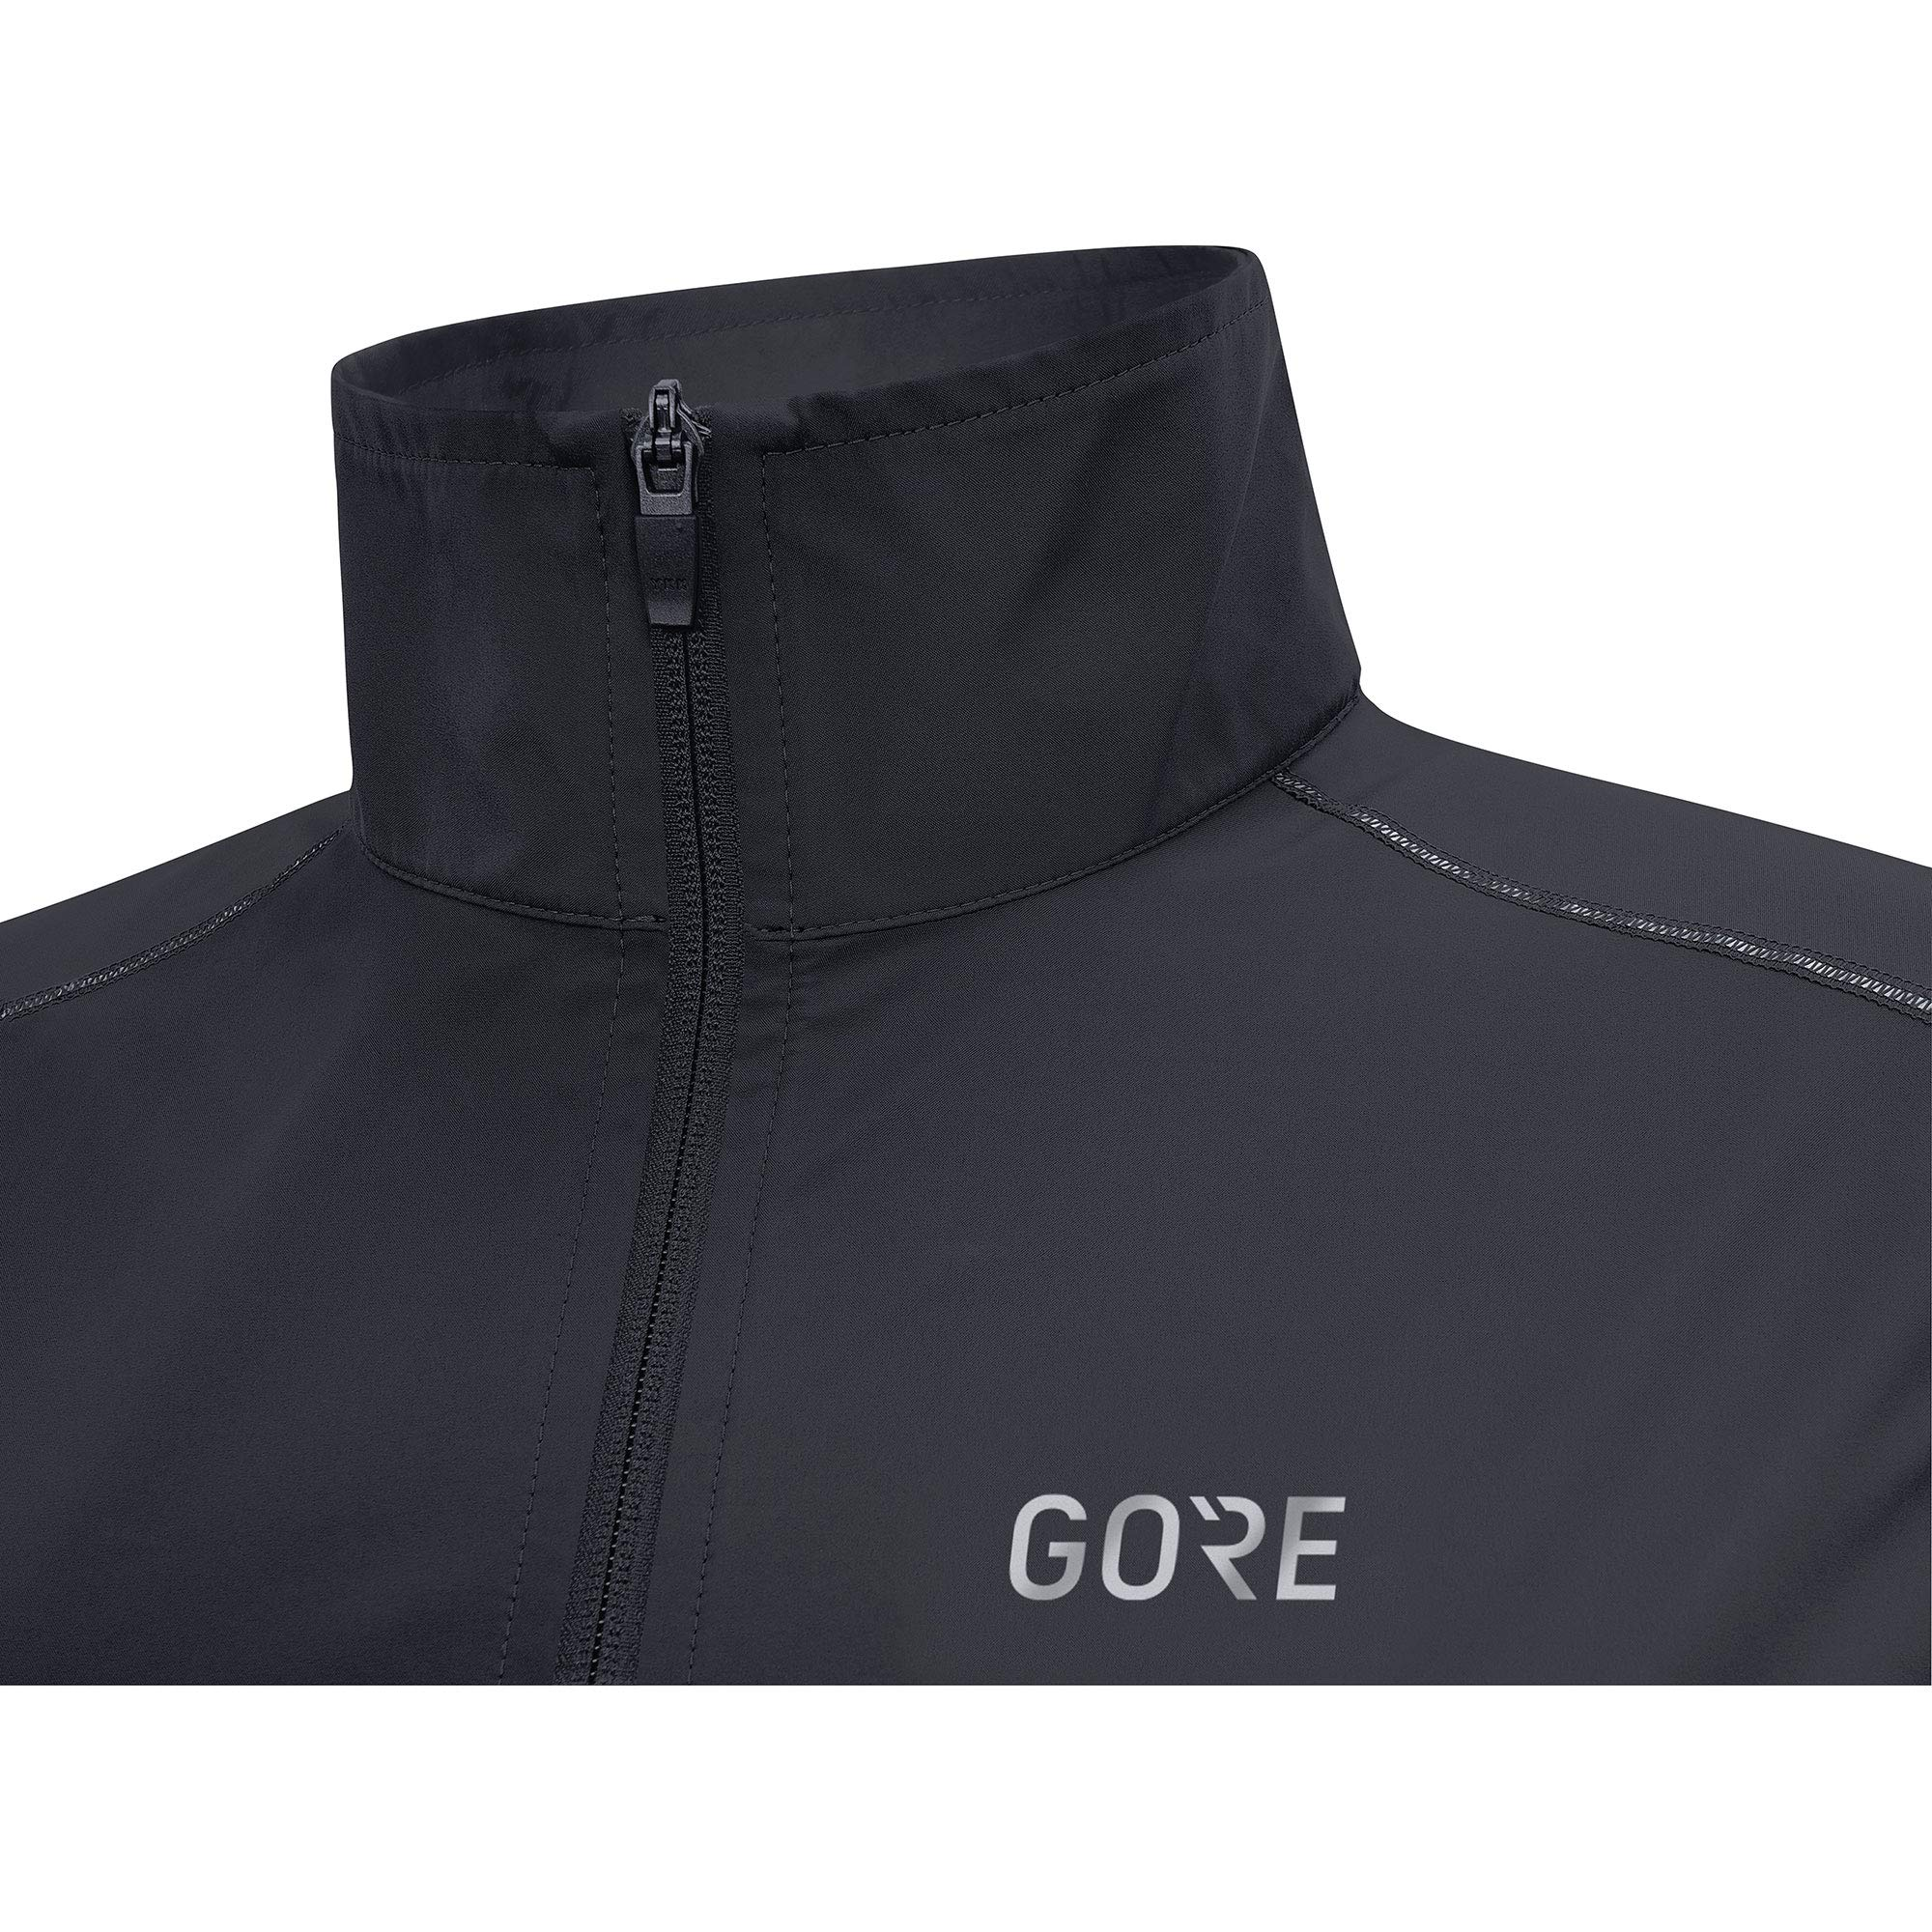 Gore Men's R3 Gws Vest,  black,  L by GORE WEAR (Image #6)